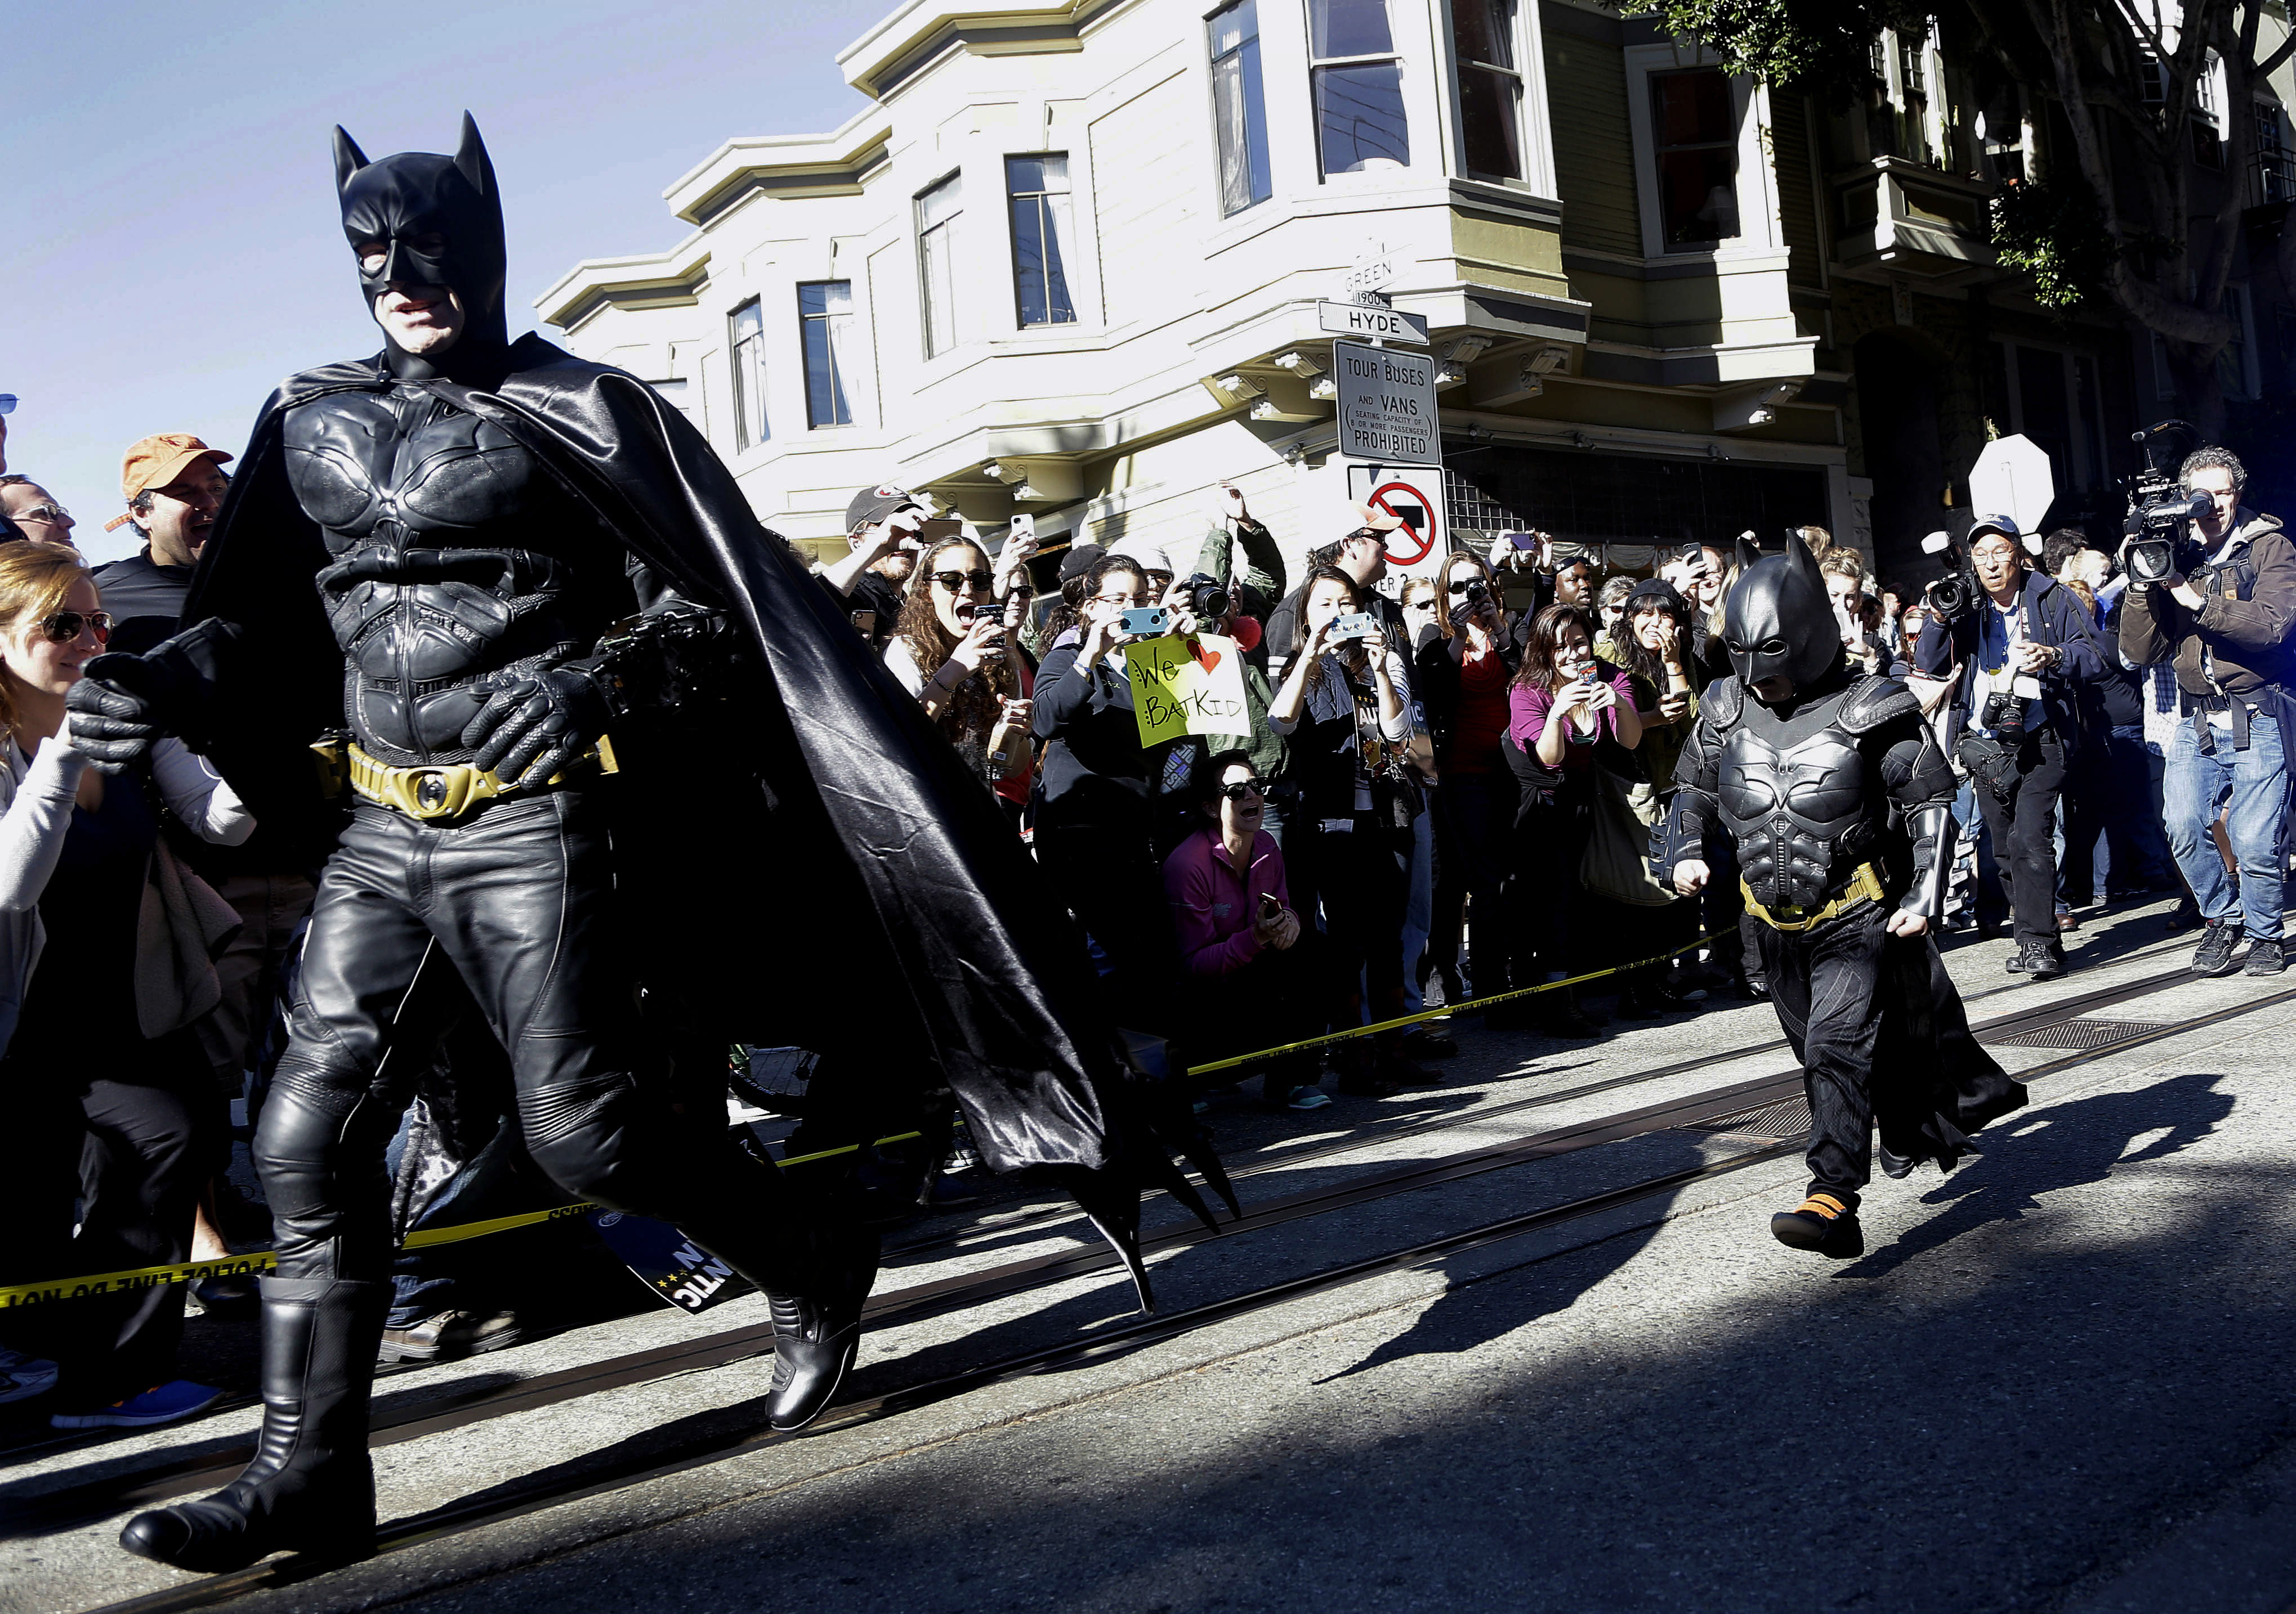 "Miles Scott, dressed as Batkid, right, runs with Batman after saving a damsel in distress in San Francisco, Friday, Nov. 15, 2013. San Francisco turned into Gotham City on Friday, as city officials helped fulfill Scott's wish to be ""Batkid."" Scott, a leukemia patient from Tulelake in far Northern California, was called into service on Friday morning by San Francisco Police Chief Greg Suhr to help fight crime, The Greater Bay Area Make-A-Wish Foundation says. (AP Photo/Jeff Chiu)"